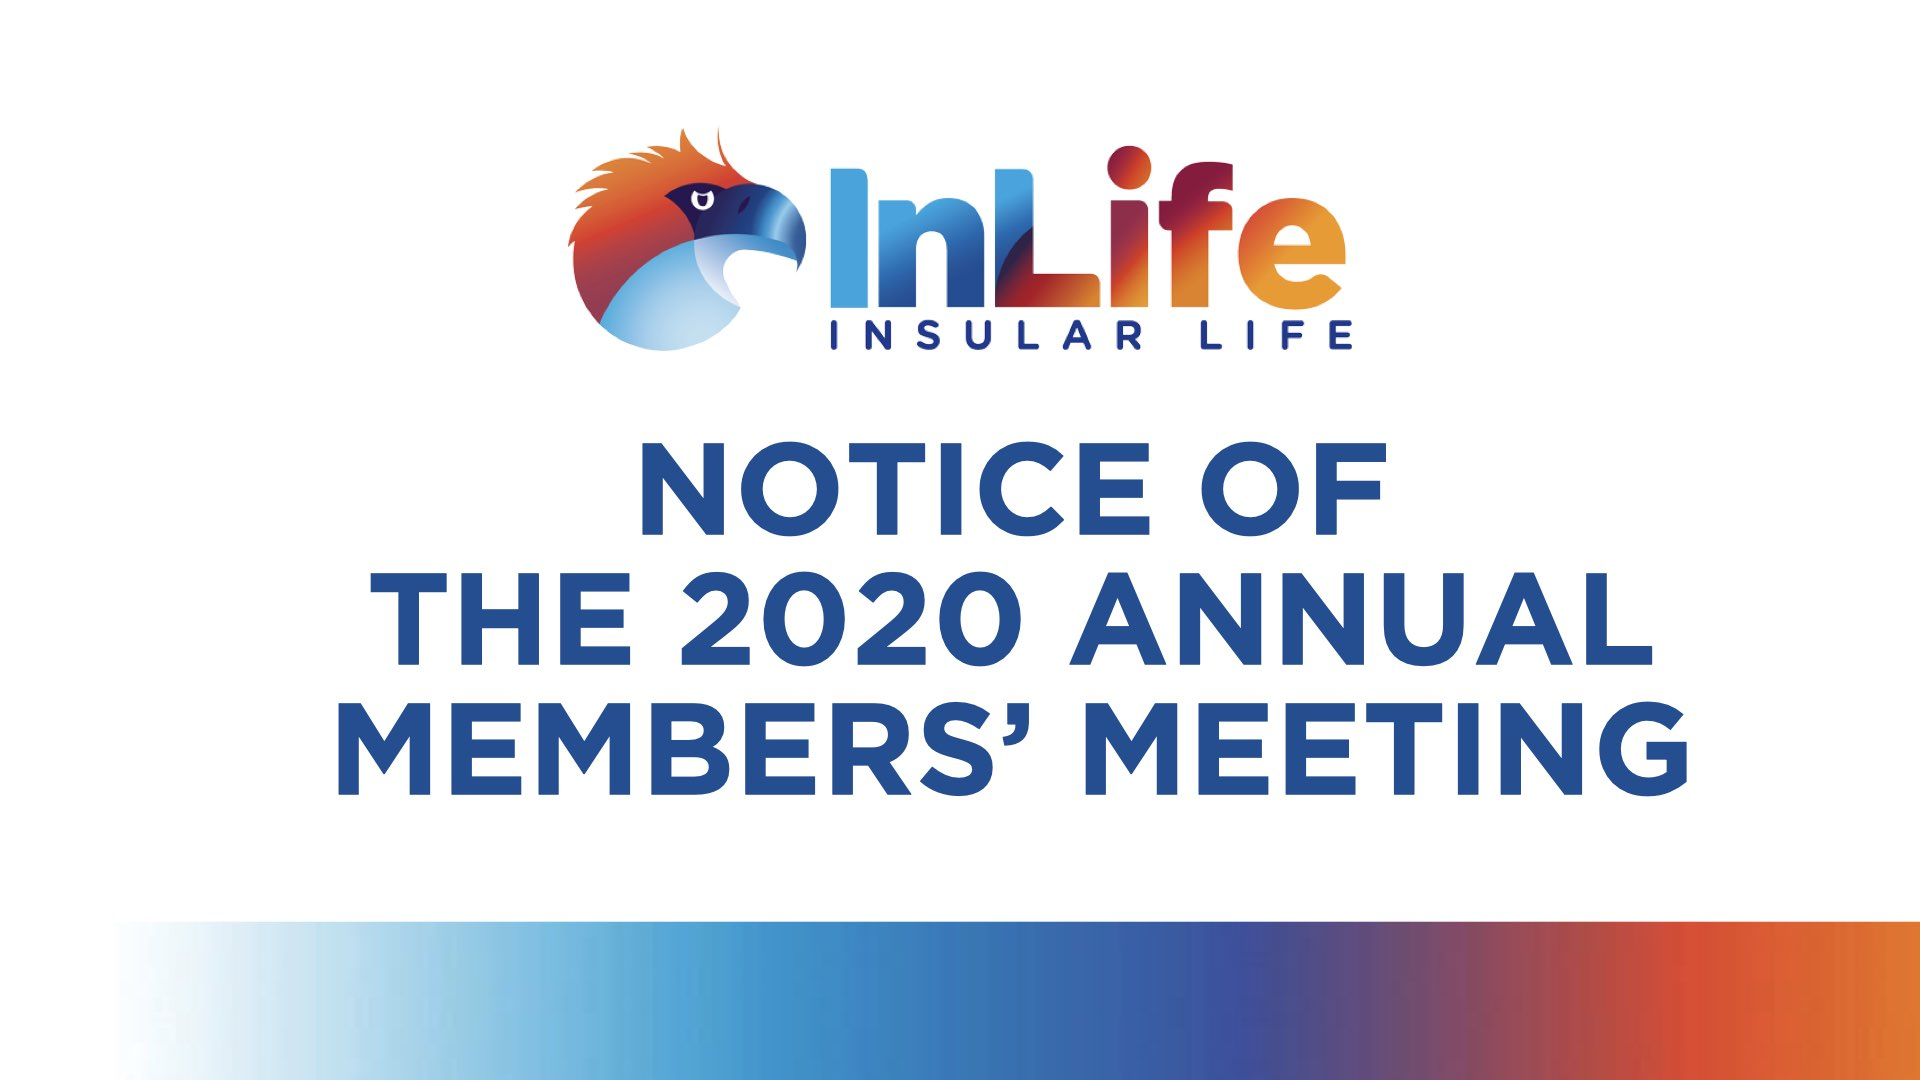 Notice of the 2020 Annual Members' Meeting